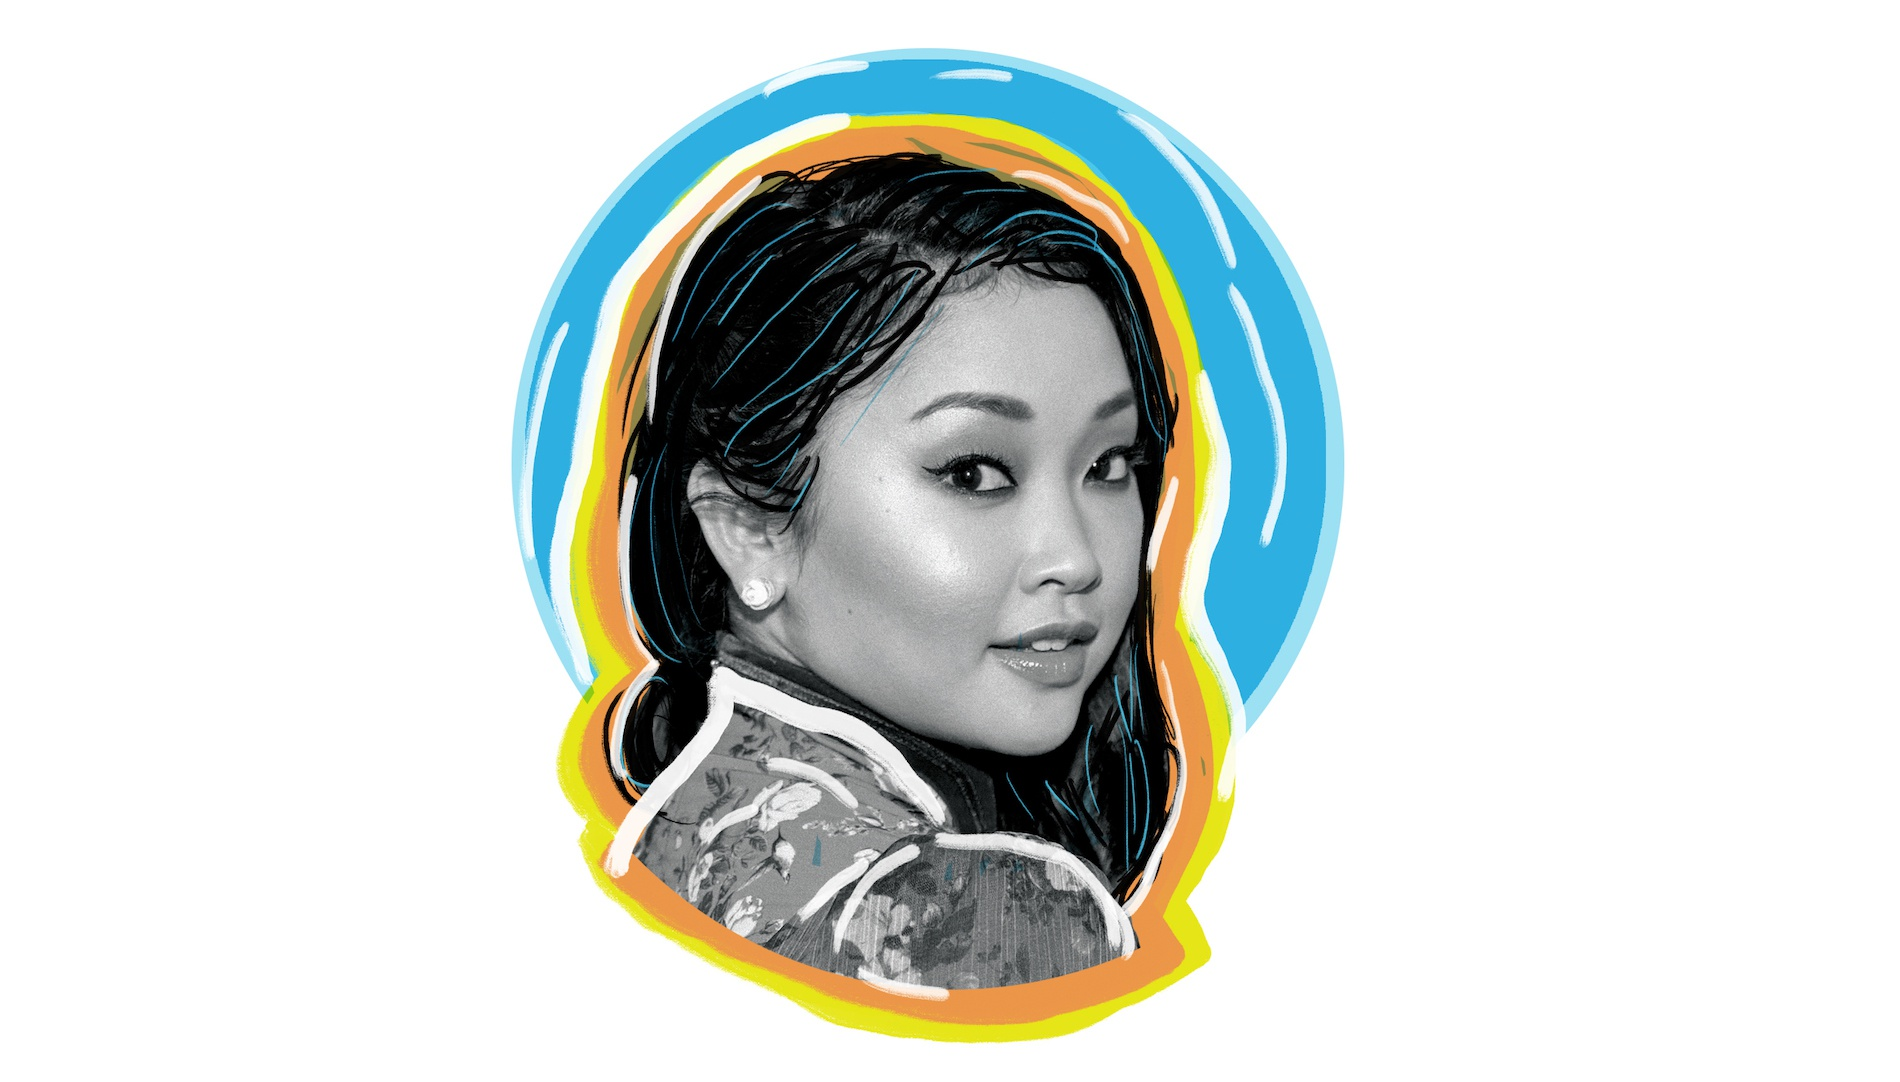 Lana Condor's Life Advice: 'Talk to Yourself Like You're Your Own Best Friend'